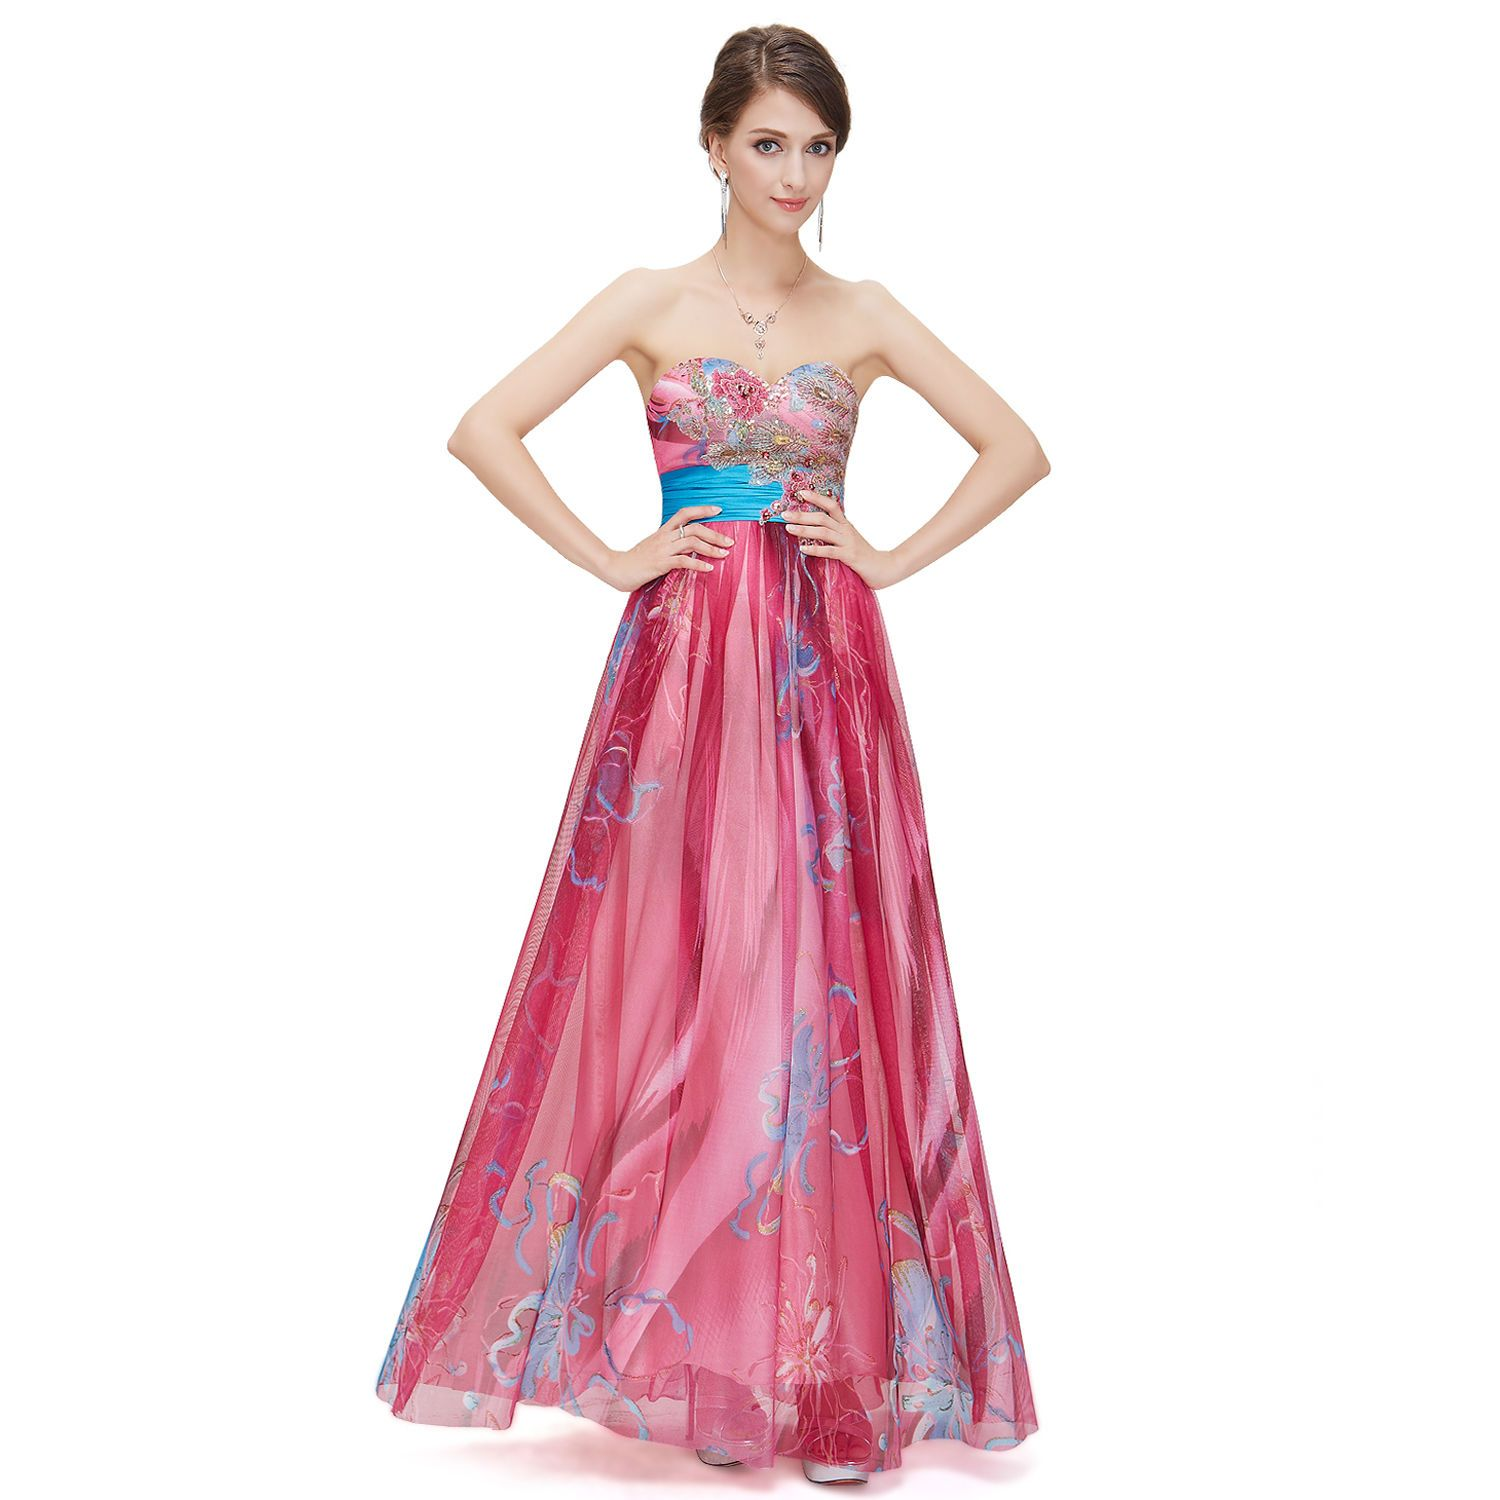 Awesome elegant homecoming prom ball dresses long evening party gown